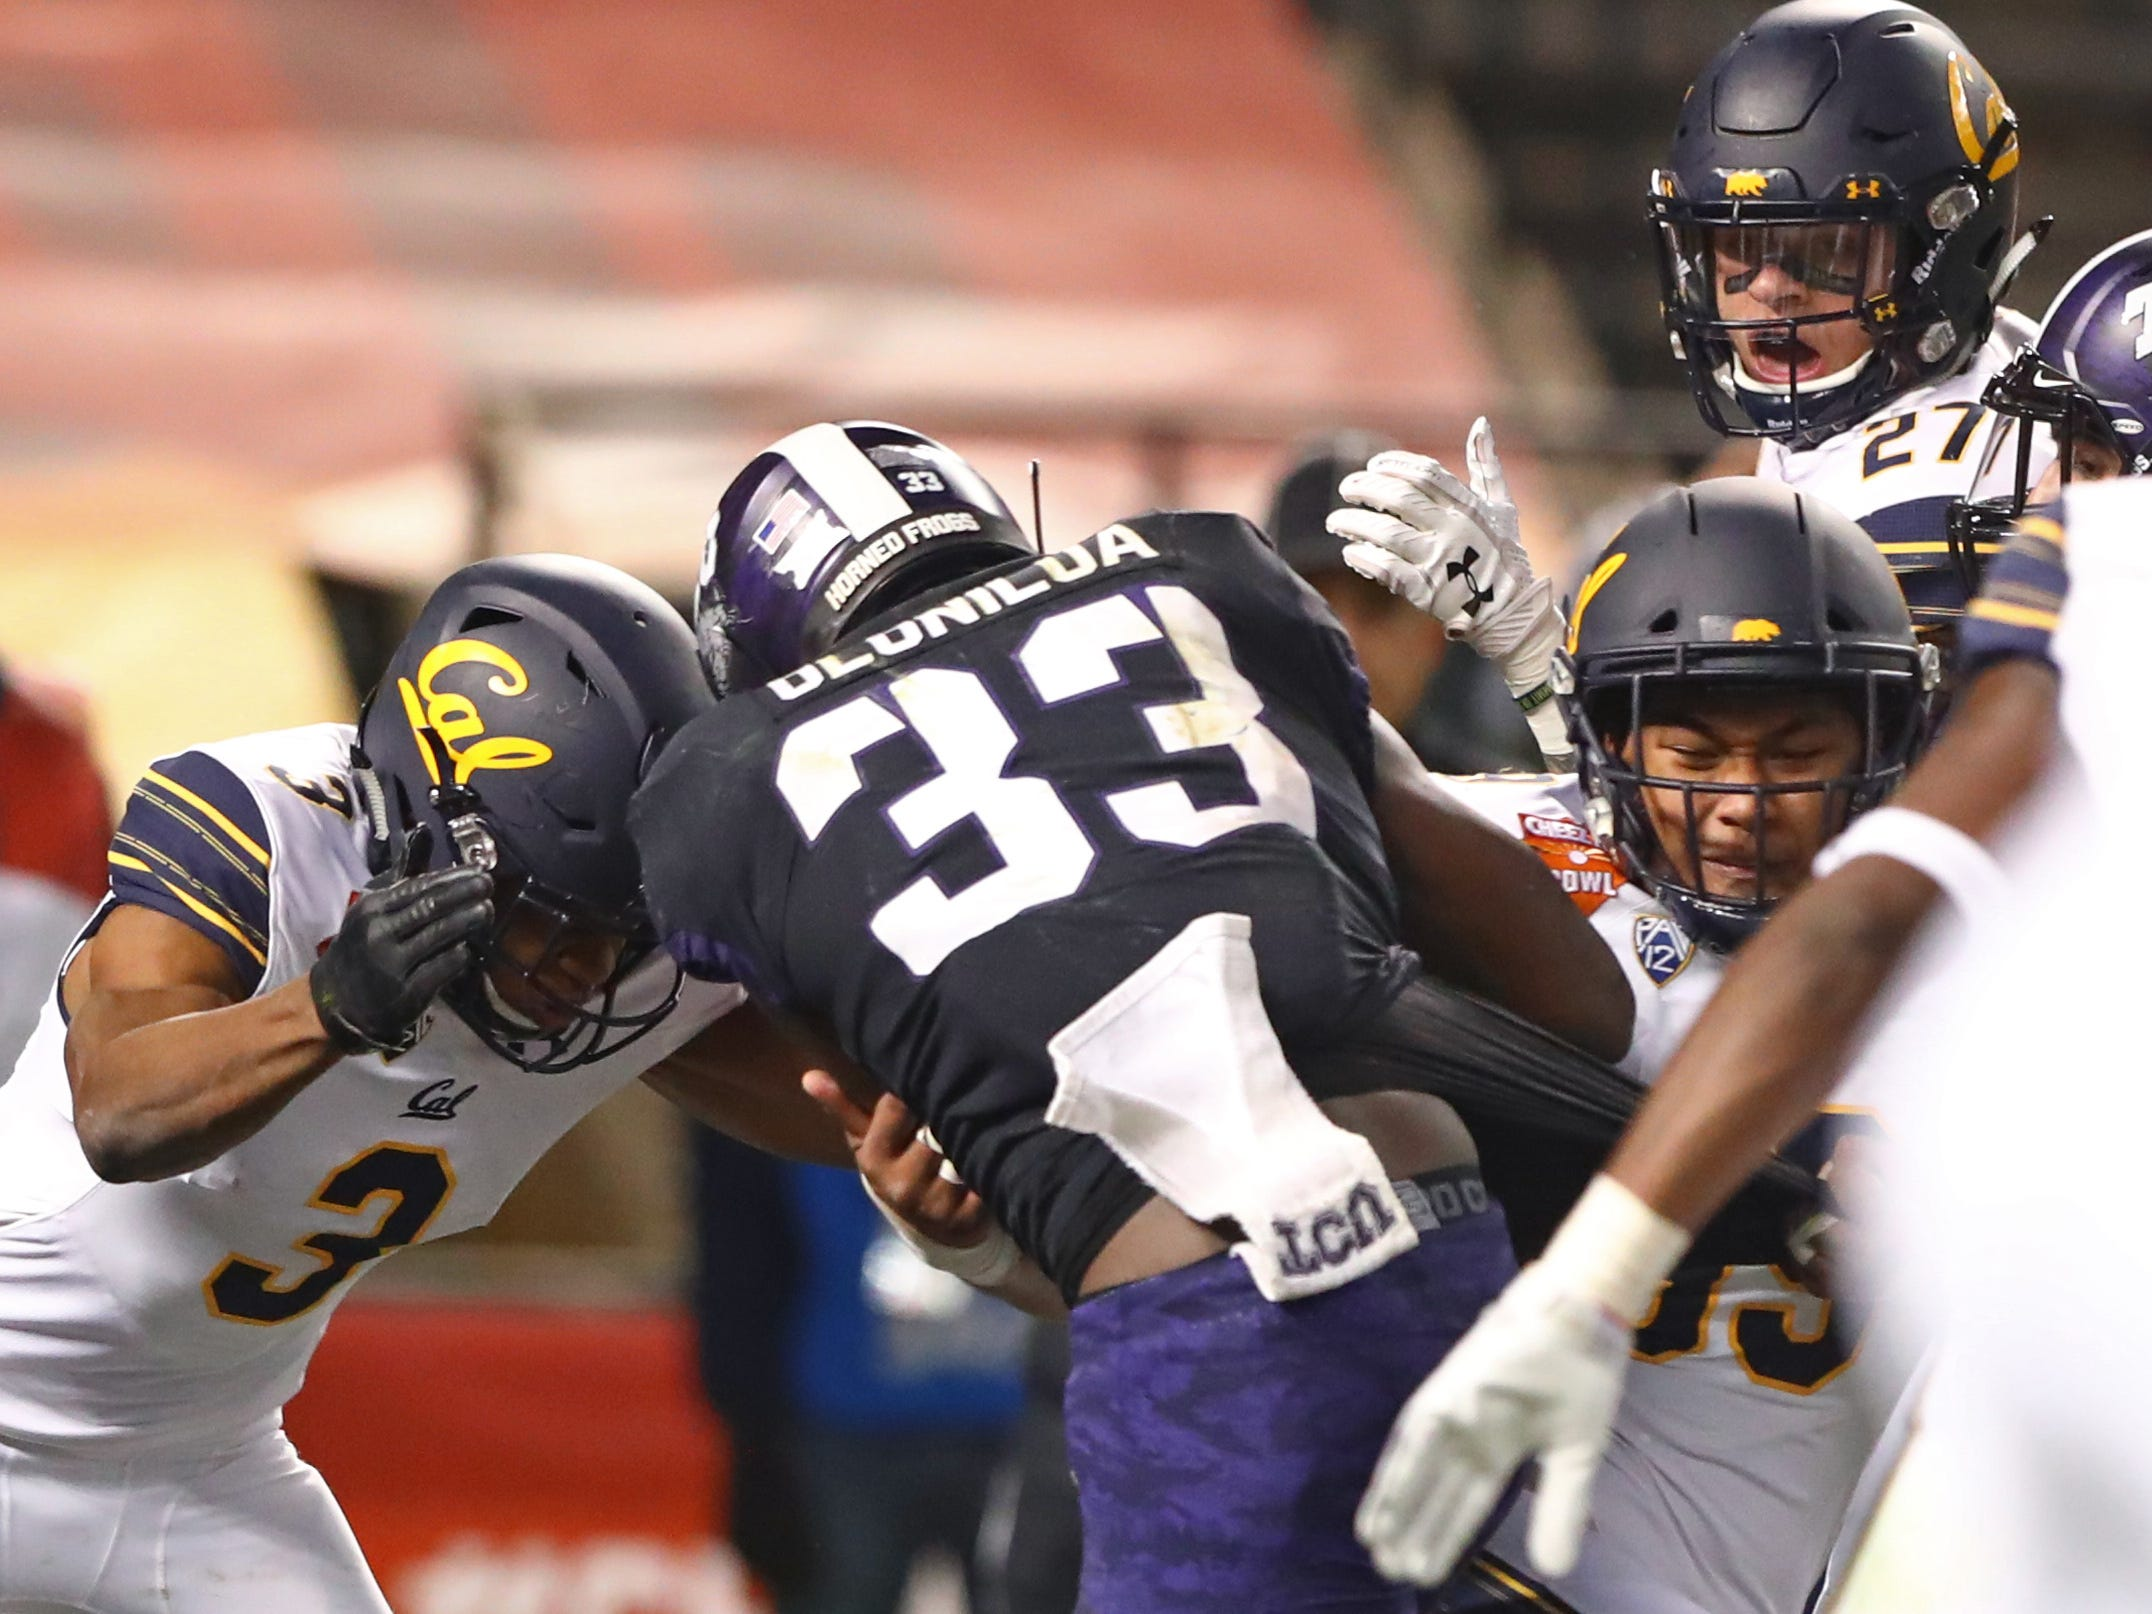 Dec 26, 2018; Phoenix, AZ, USA; Texas Christian Horned Frogs running back Sewo Olonilua (33) scores a second half touchdown against the California Golden Bears in the 2018 Cheez-It Bowl at Chase Field.